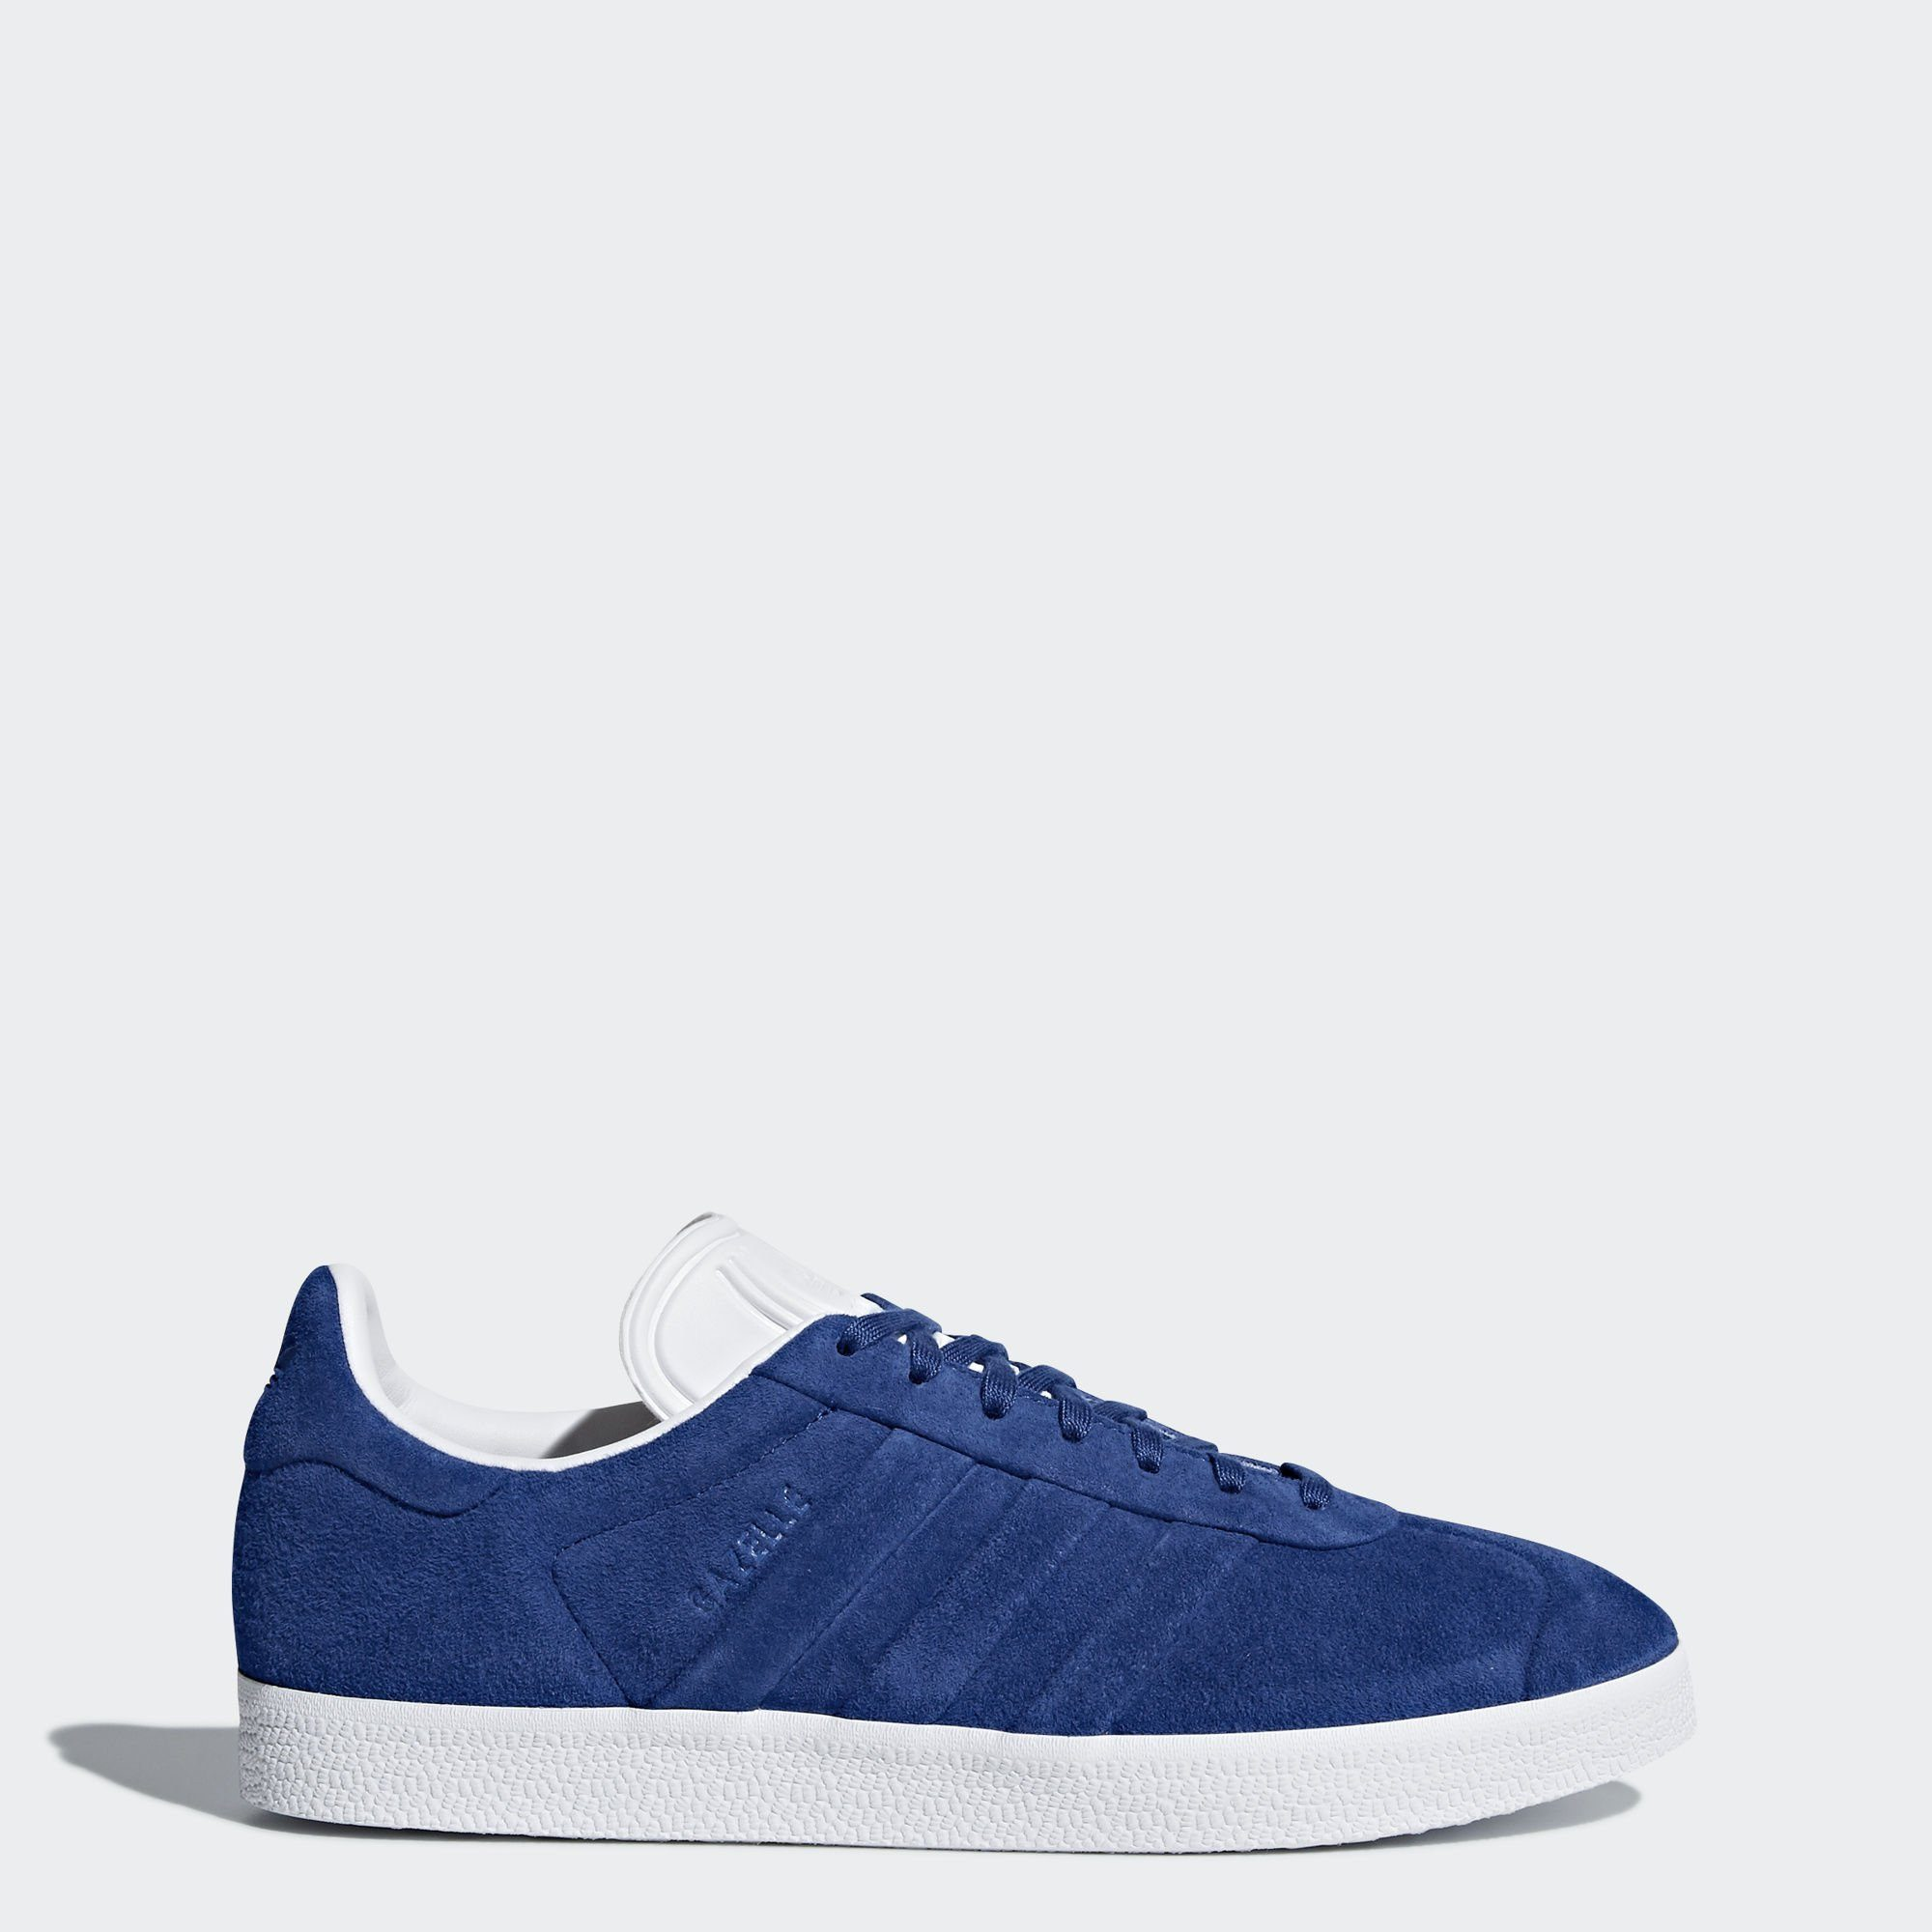 adidas Originals Gazelle Stitch and Turn Schuh Sneaker online kaufen  white